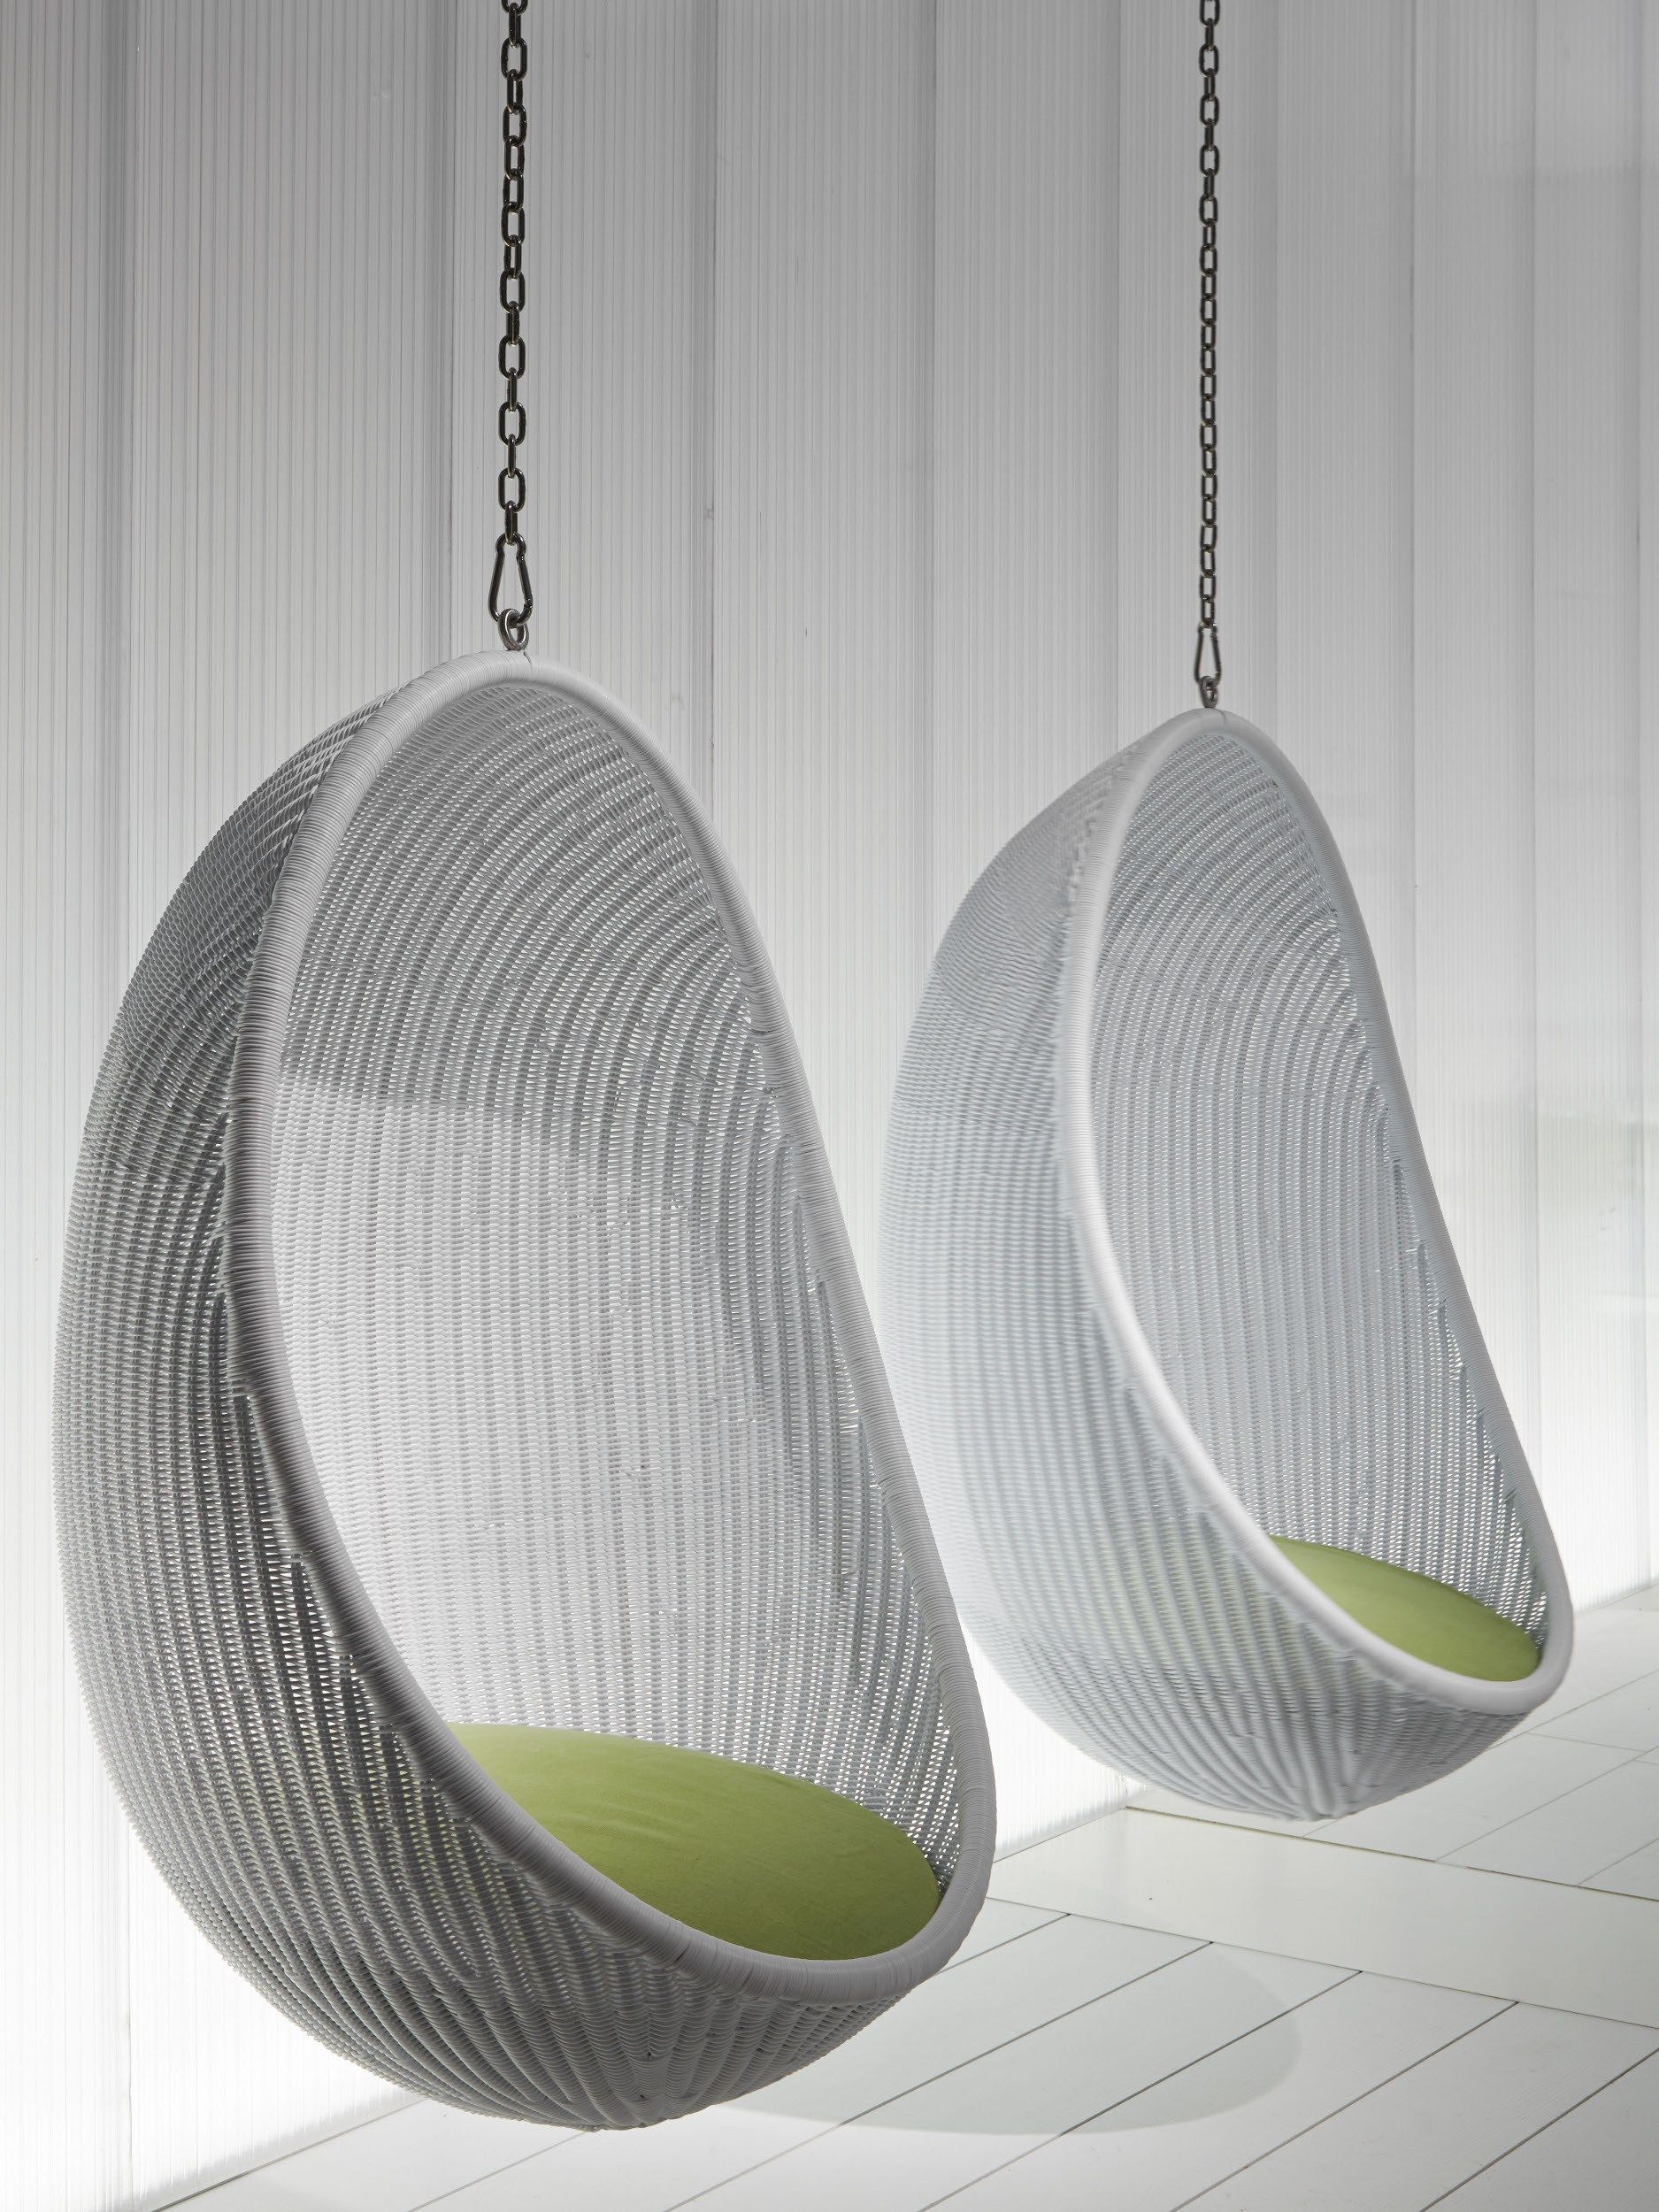 Furniture nice looking white woven rattan two hanging egg for Indoor hanging chair for bedroom